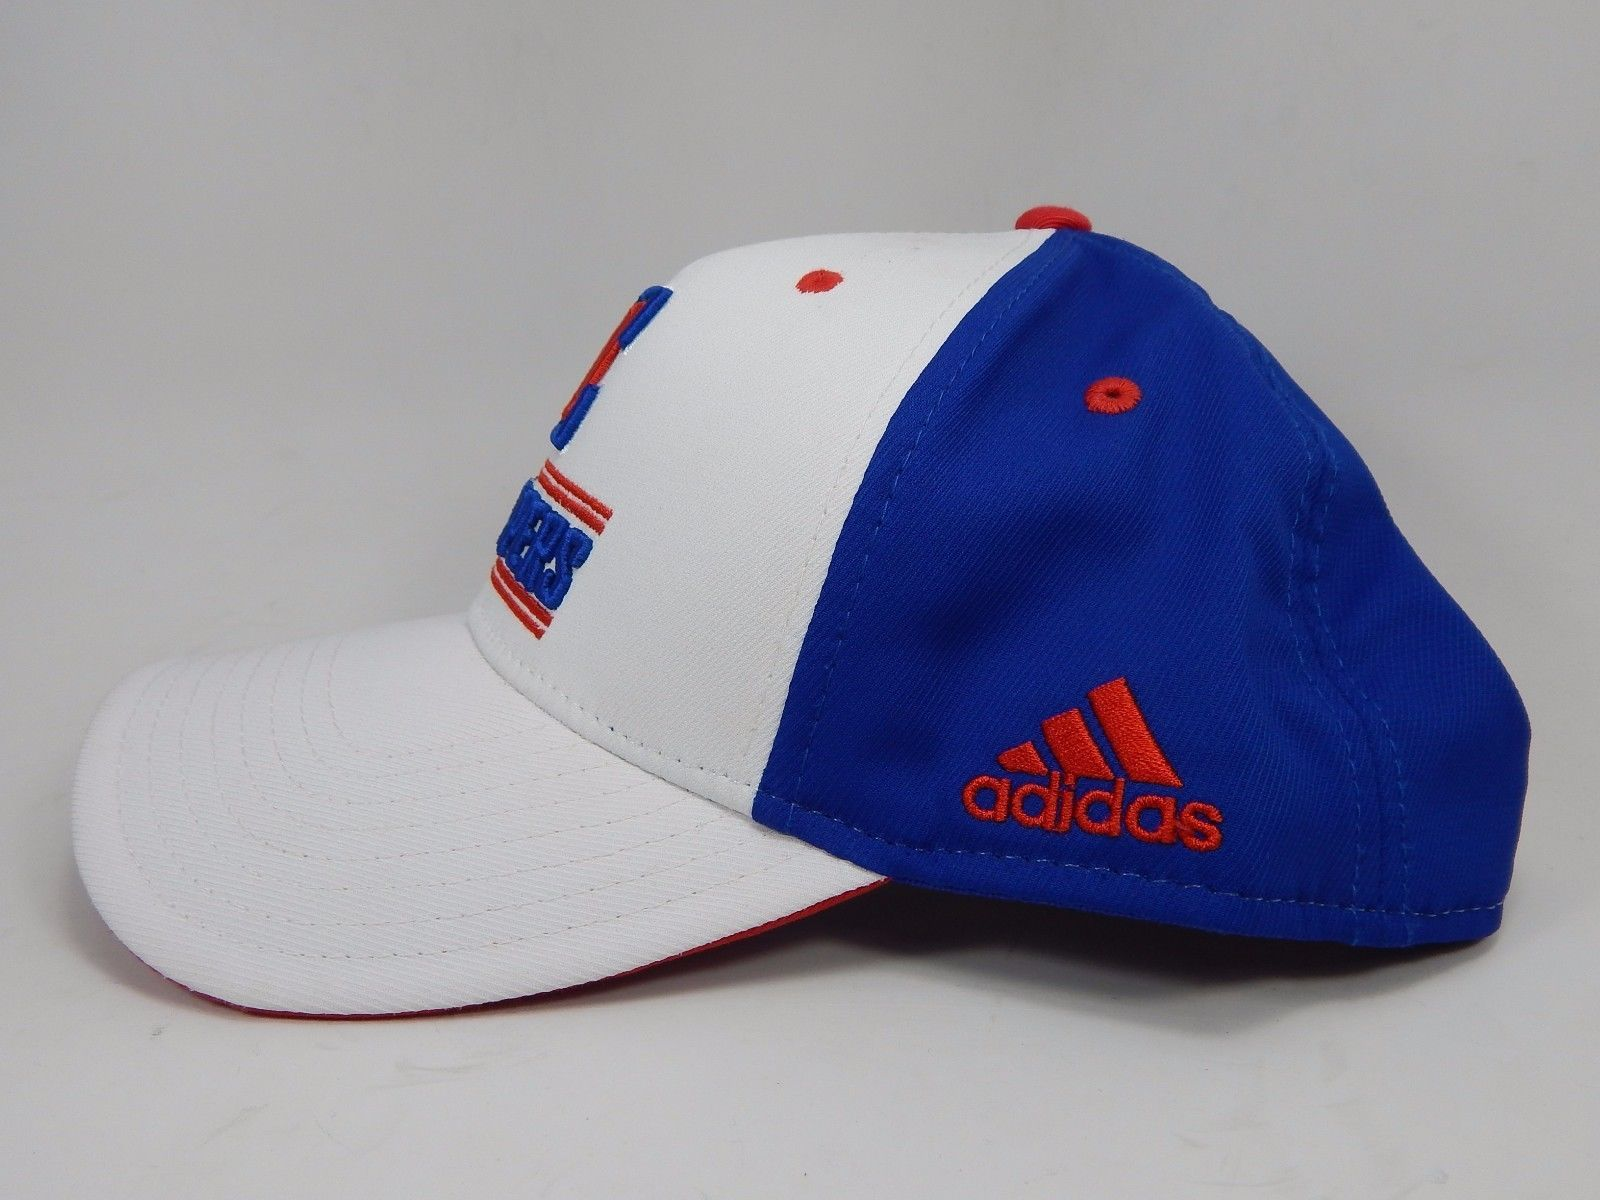 Los Angeles LA Clippers Adidas Official NBA Snap Back Curve Brim Cap Hat NEW!